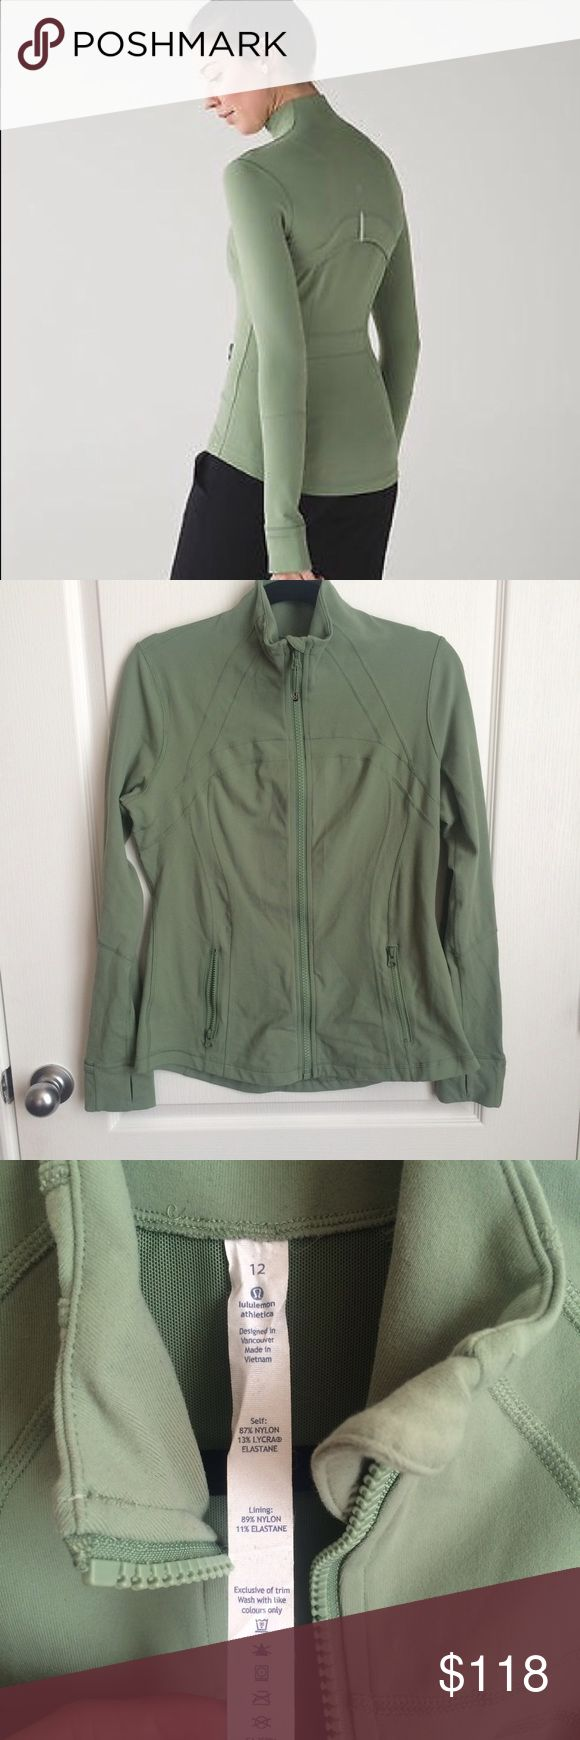 Lululemon Desert Olive Define Jacket 12 Size 12. Excellent used condition. Worn 1-2x. Color is desert olive.    Price firm.   Lots of Lululemon, Nike and makeup items in my closet, so please check it out! Thanks for looking! lululemon athletica Jackets & Coats Blazers